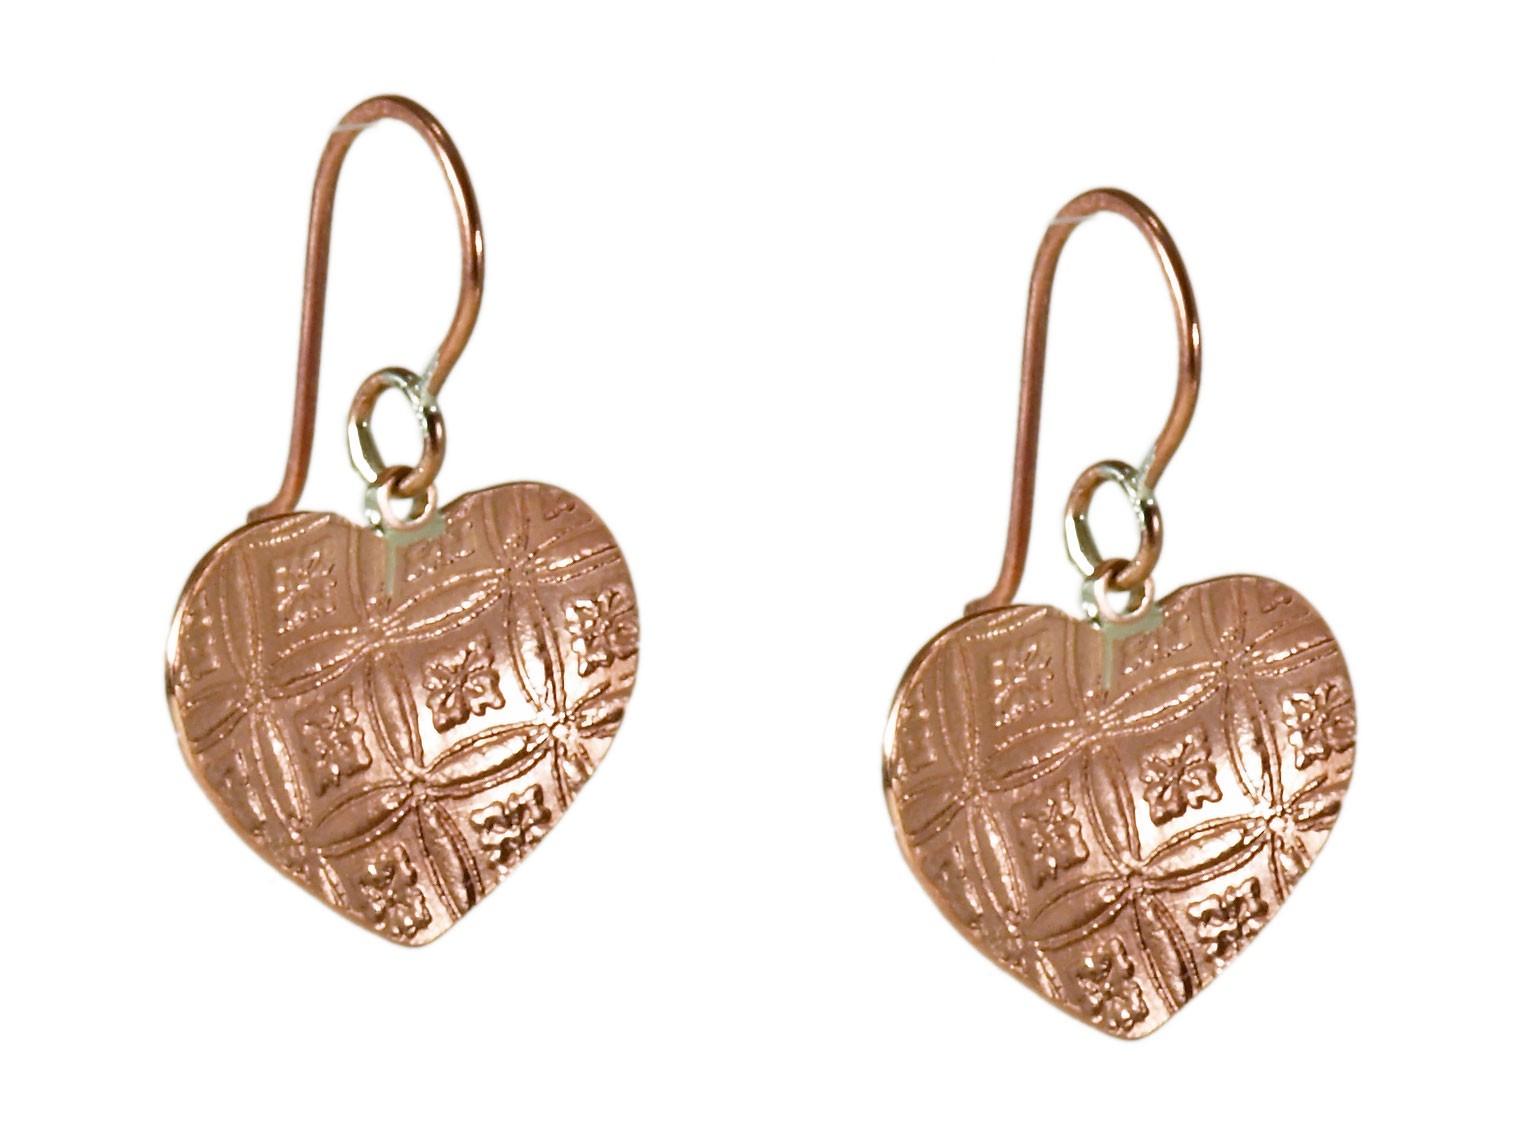 Copper Single Heart Earrings